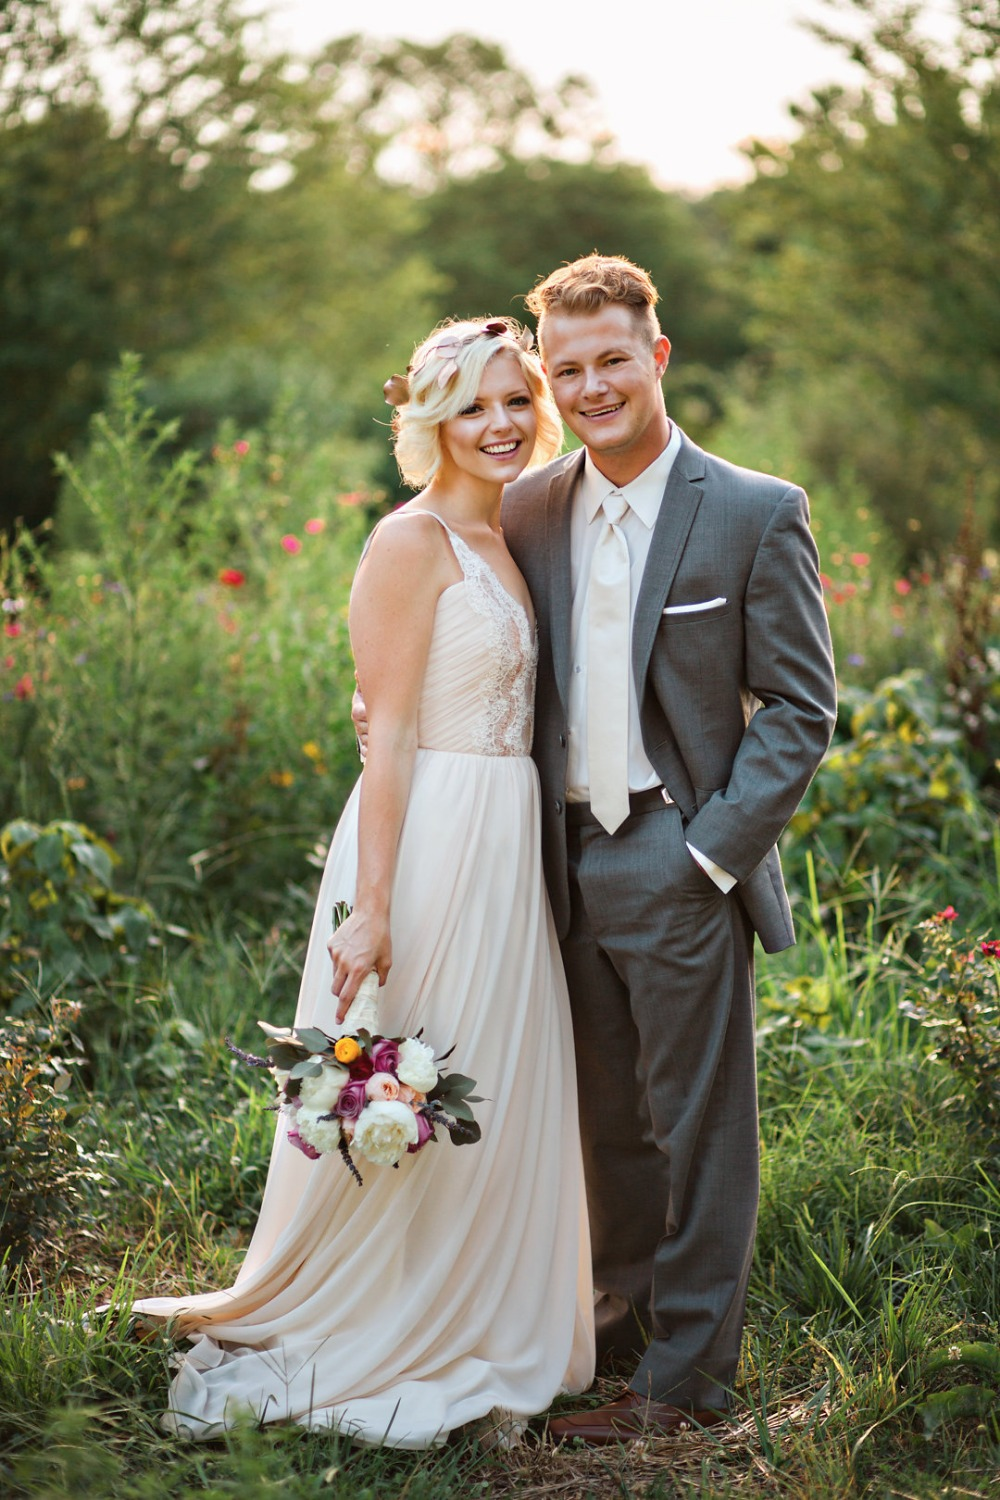 Rustic Vintage Elopement in Copper